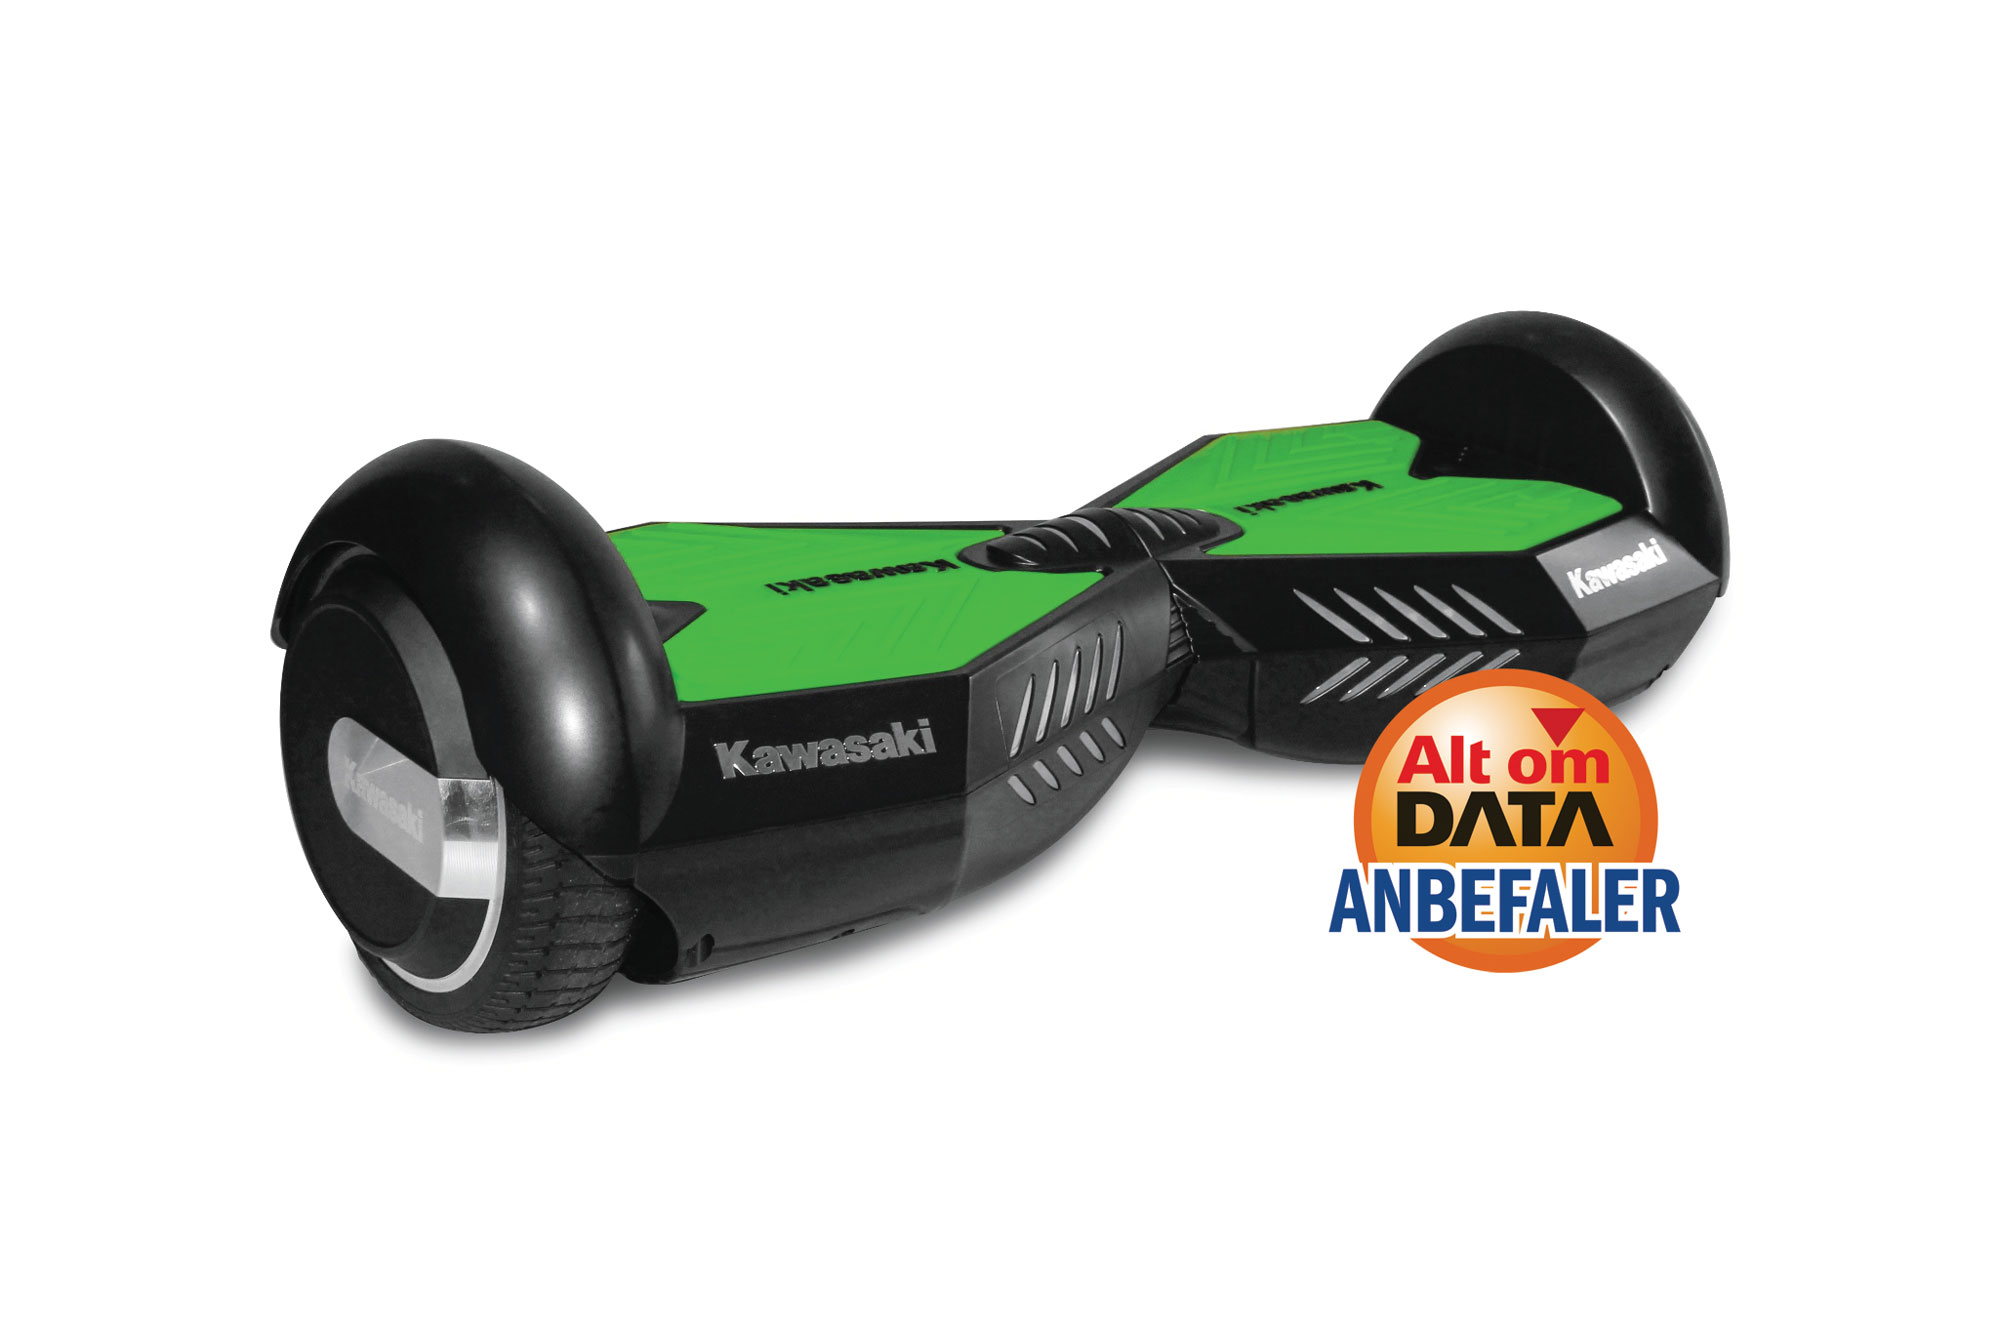 hoverboard kawasaki test sv v afsted over asfalten. Black Bedroom Furniture Sets. Home Design Ideas